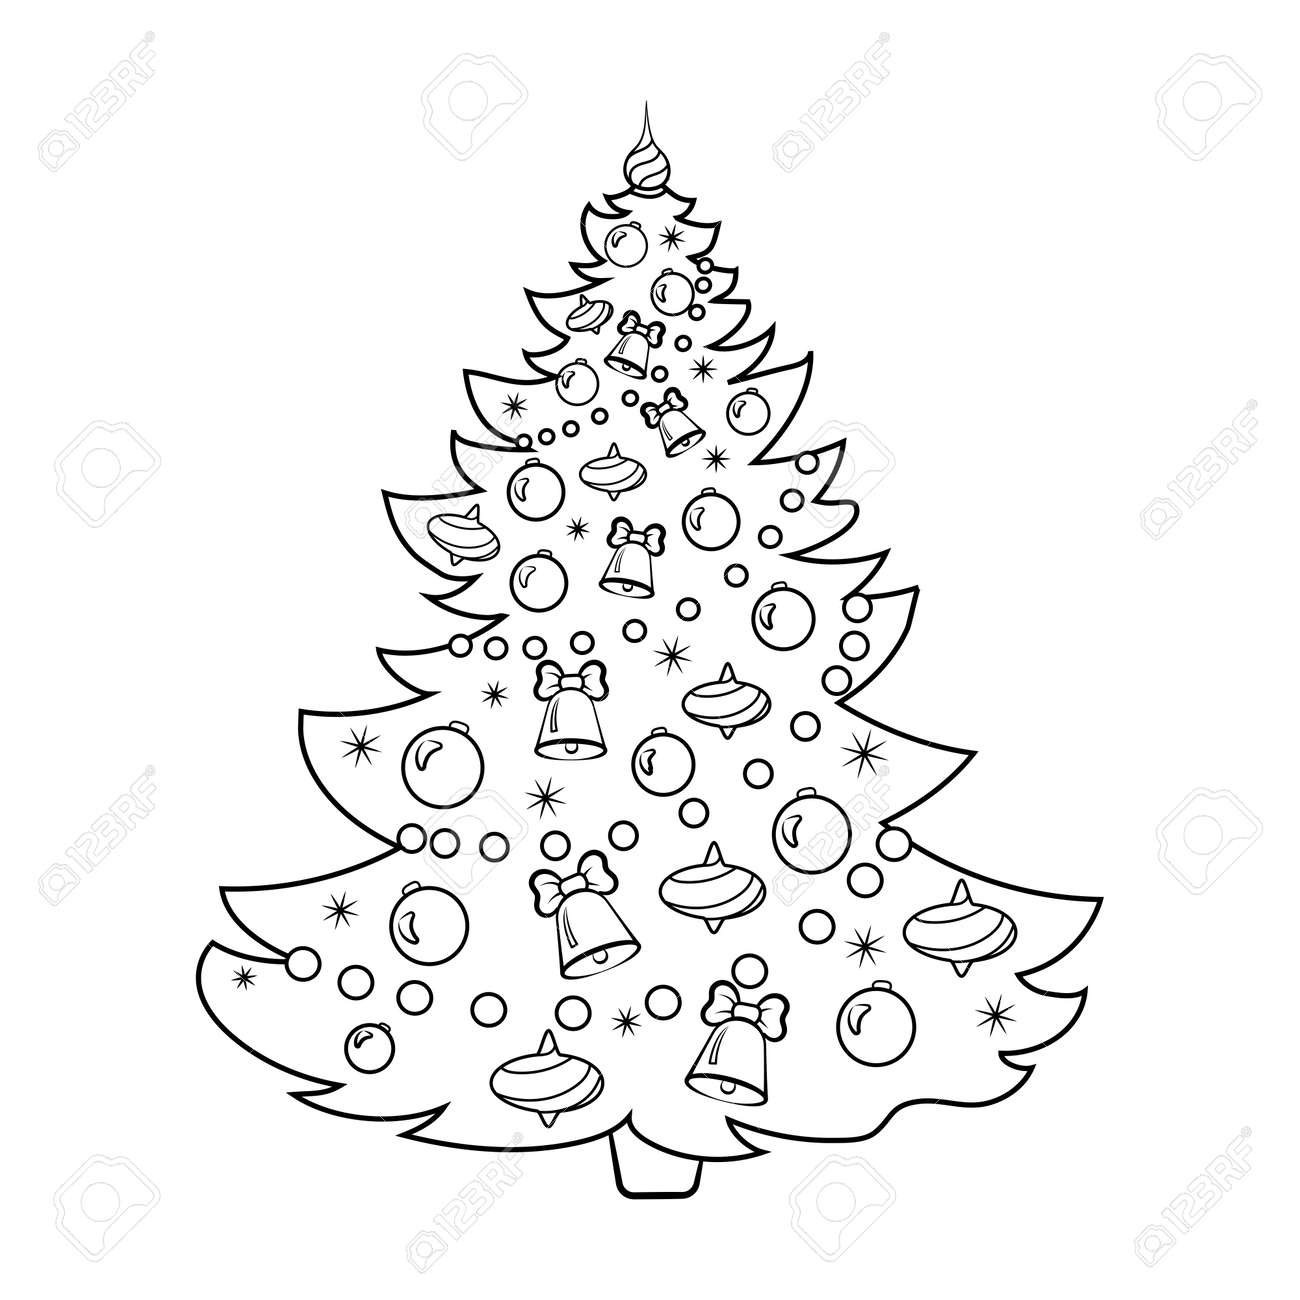 Christmas Tree Cartoon Coloring Book Vector Illustration Royalty ...